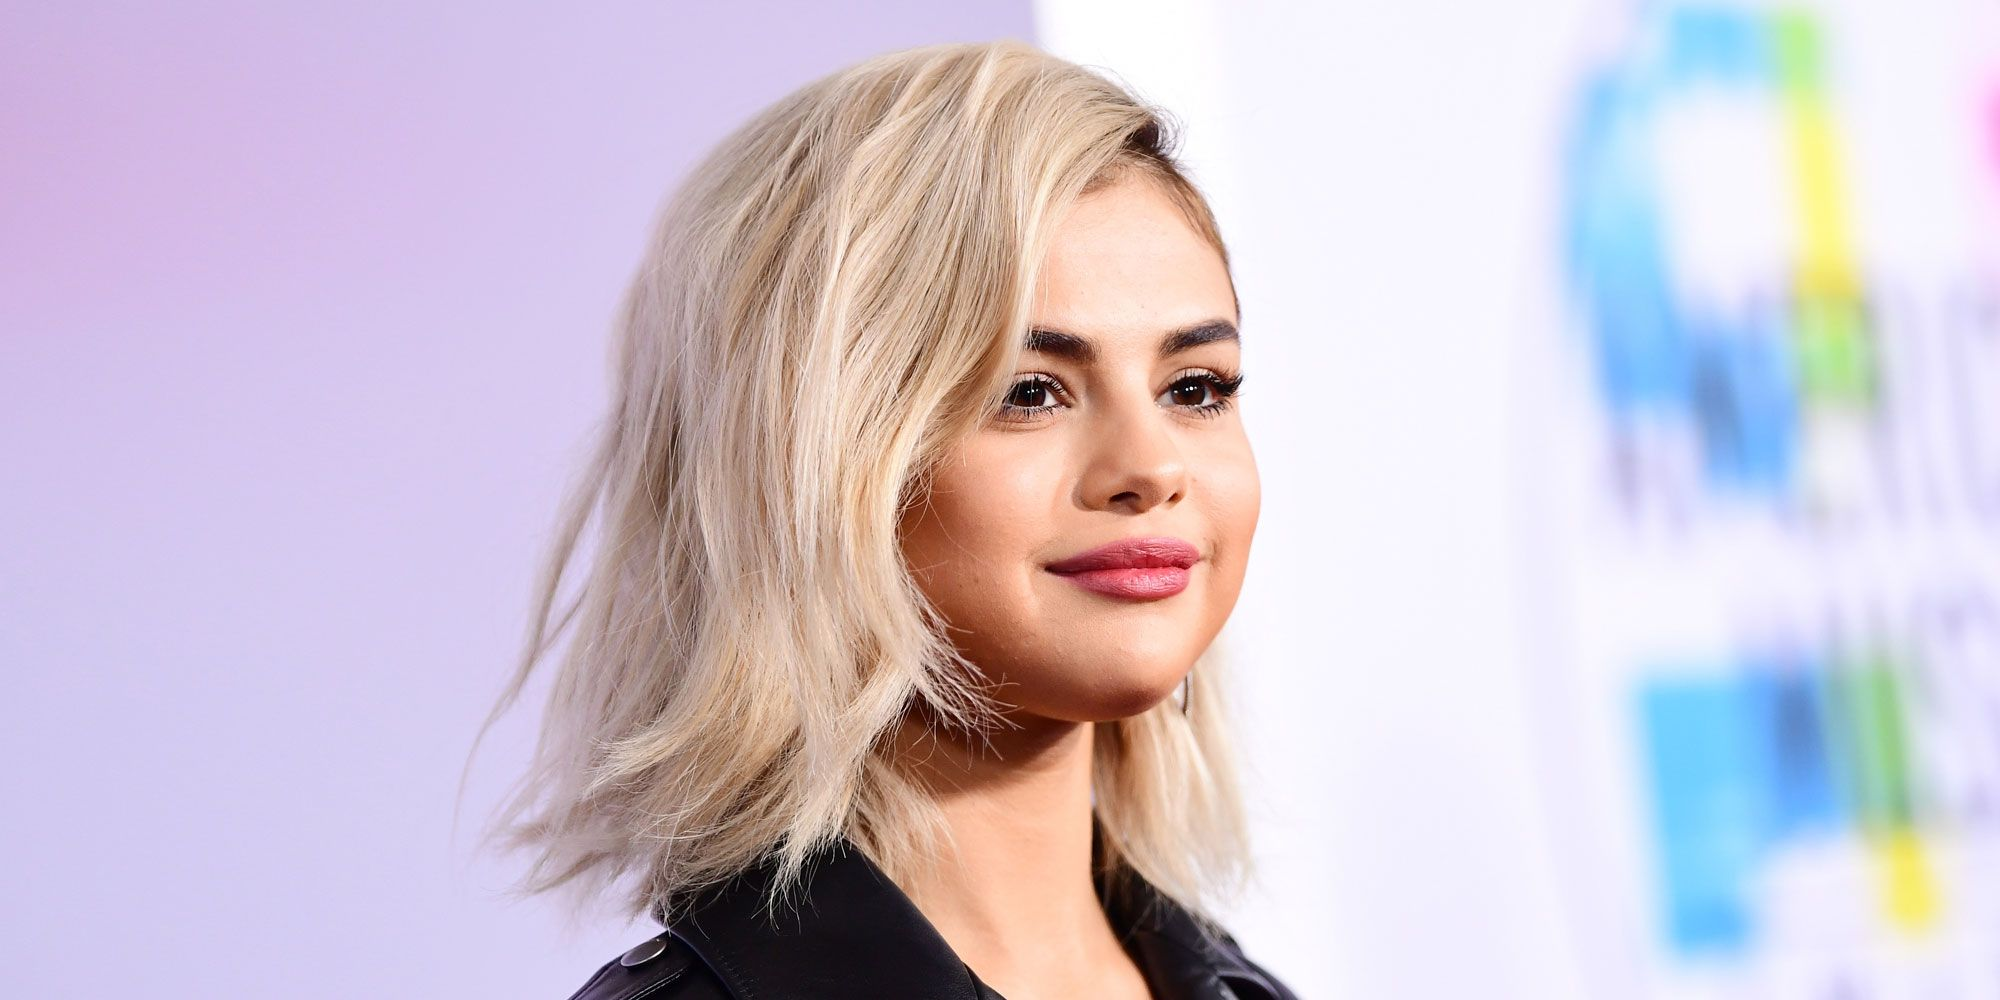 Selena Gomez Reveals The One Change She's Making For 2018 And No